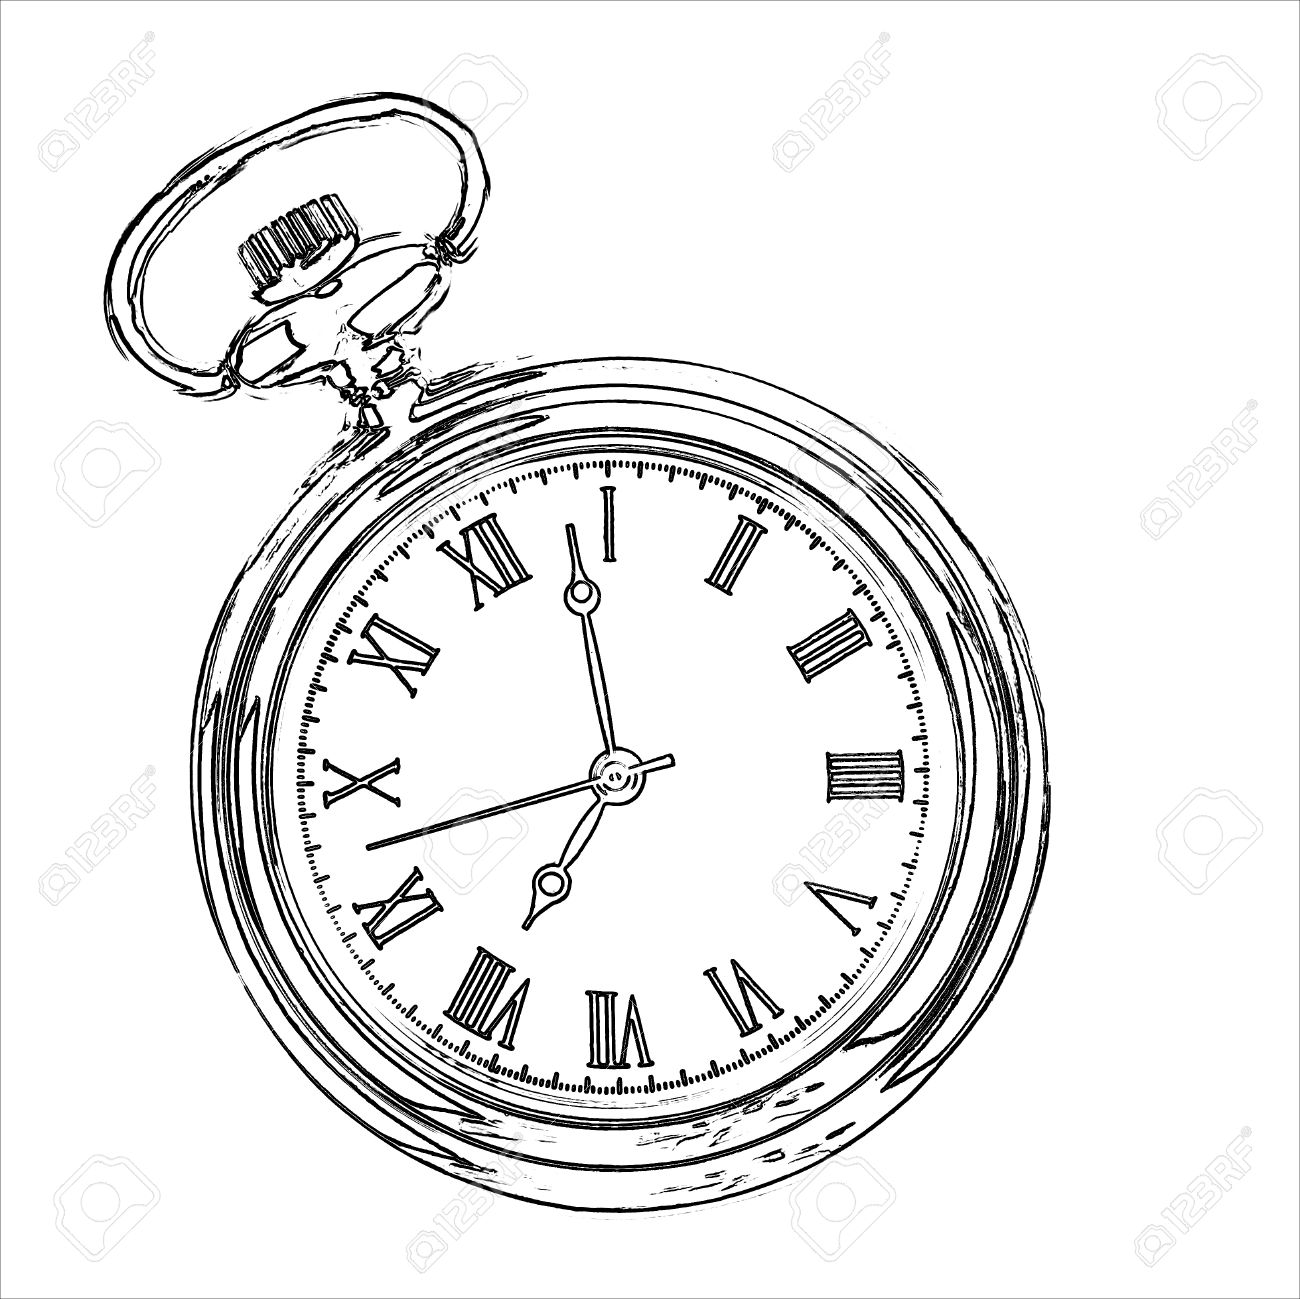 1300x1299 Pocket Watch, Drawing Stock Photo, Picture And Royalty Free Image